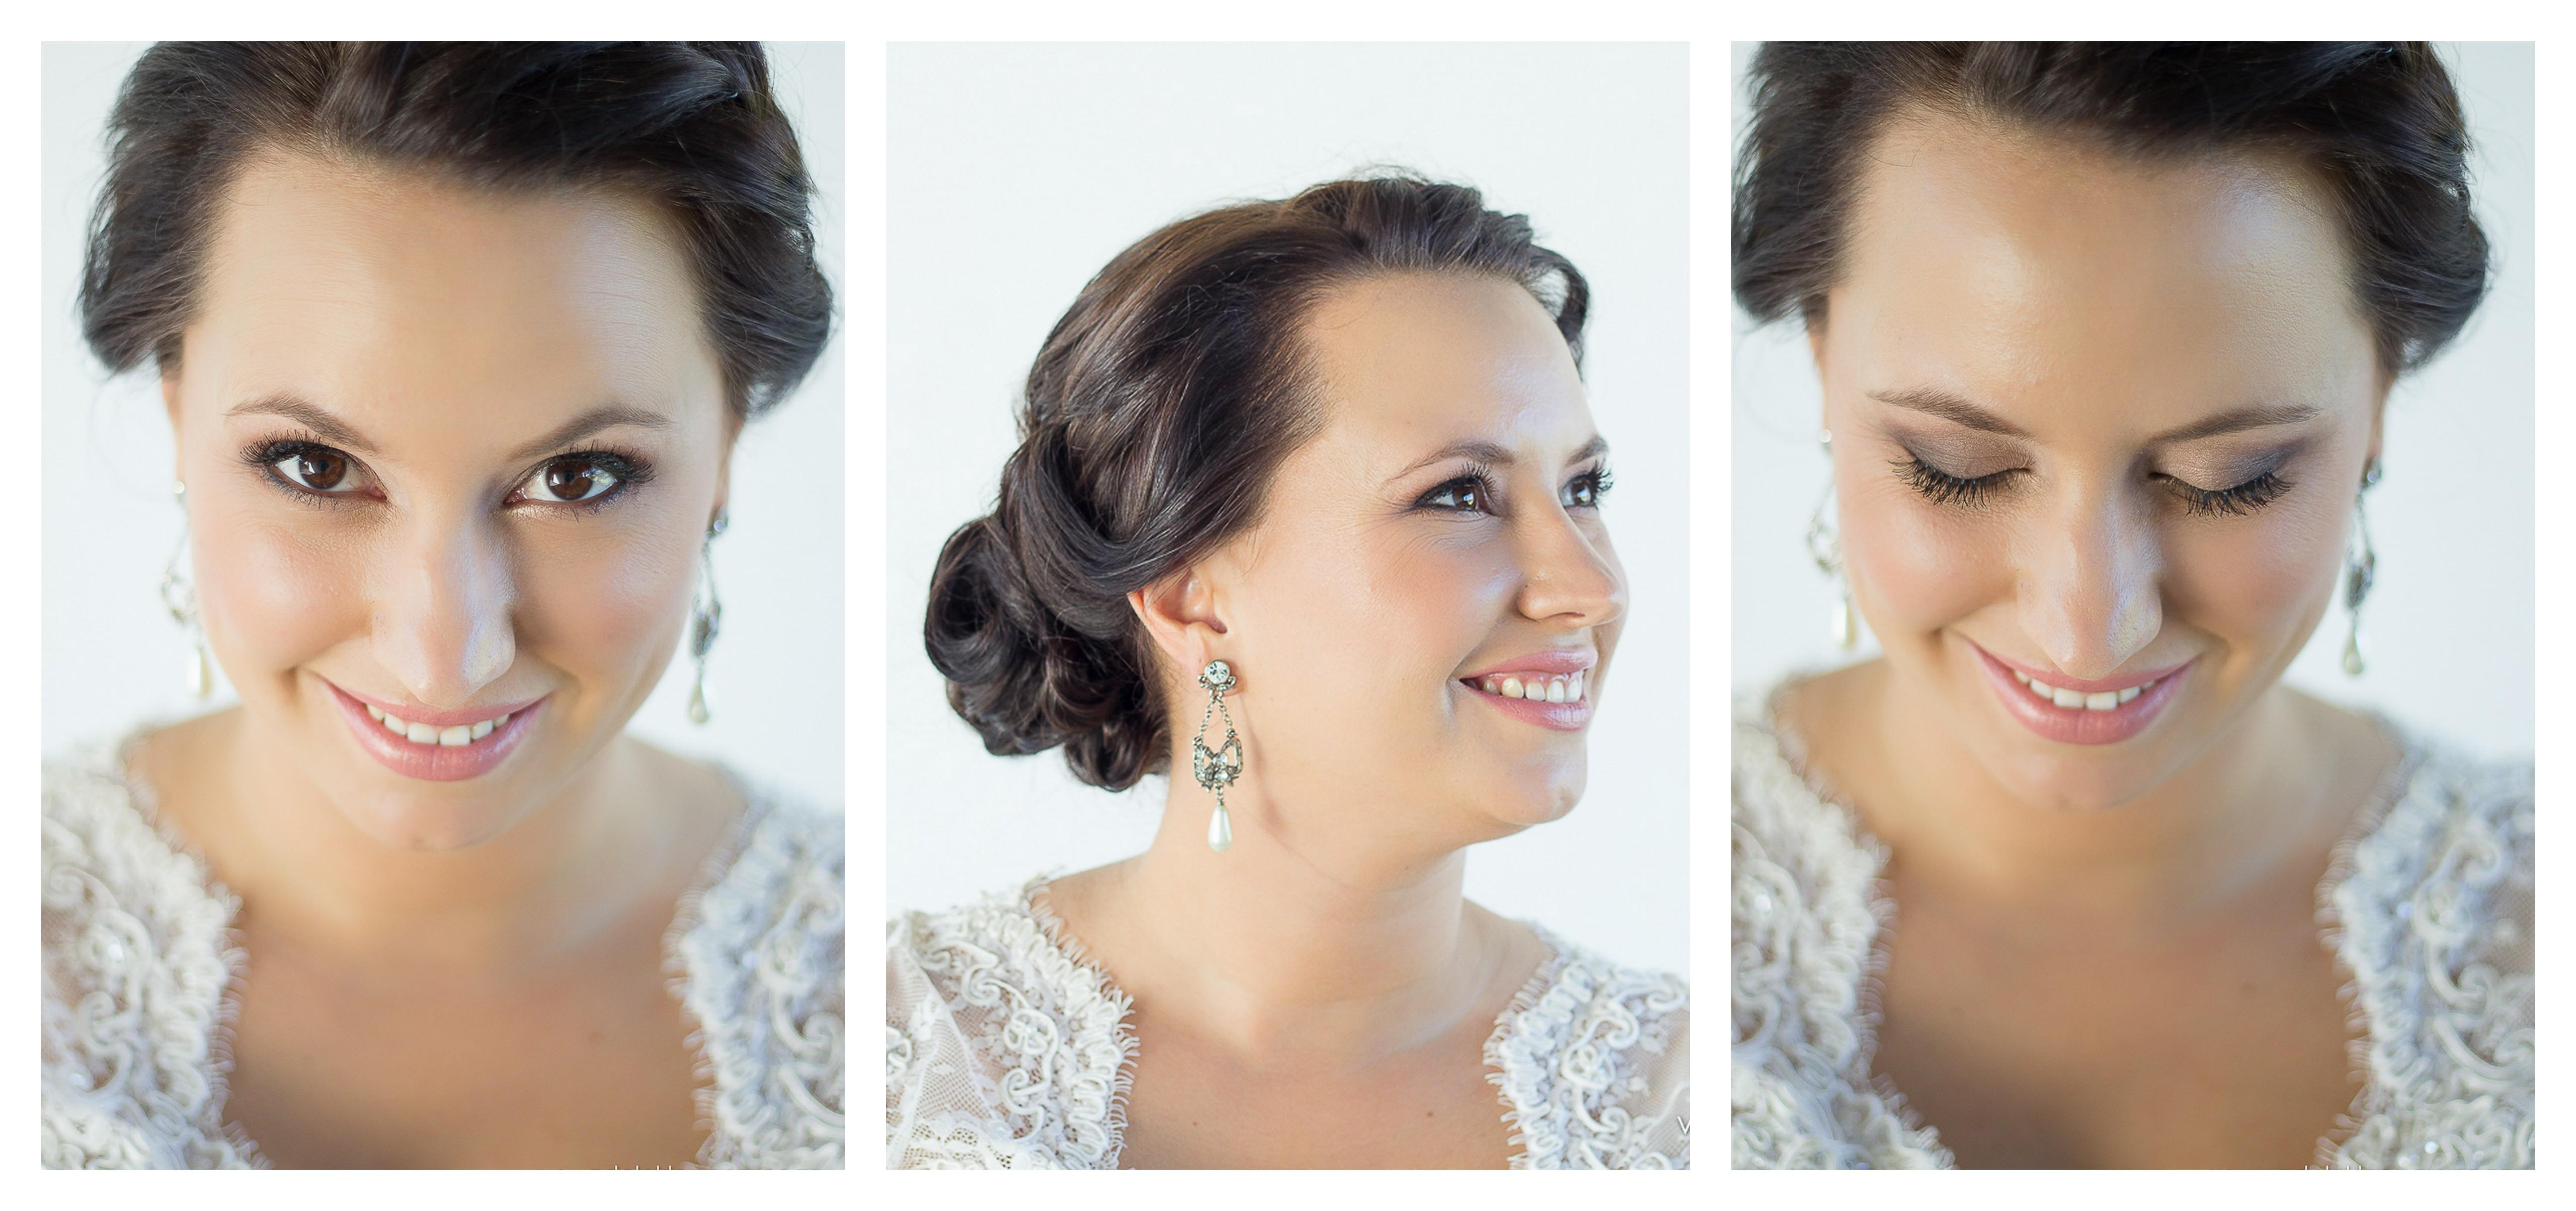 cecilia fourie make-up | hairstyling - hair & make up - cape town